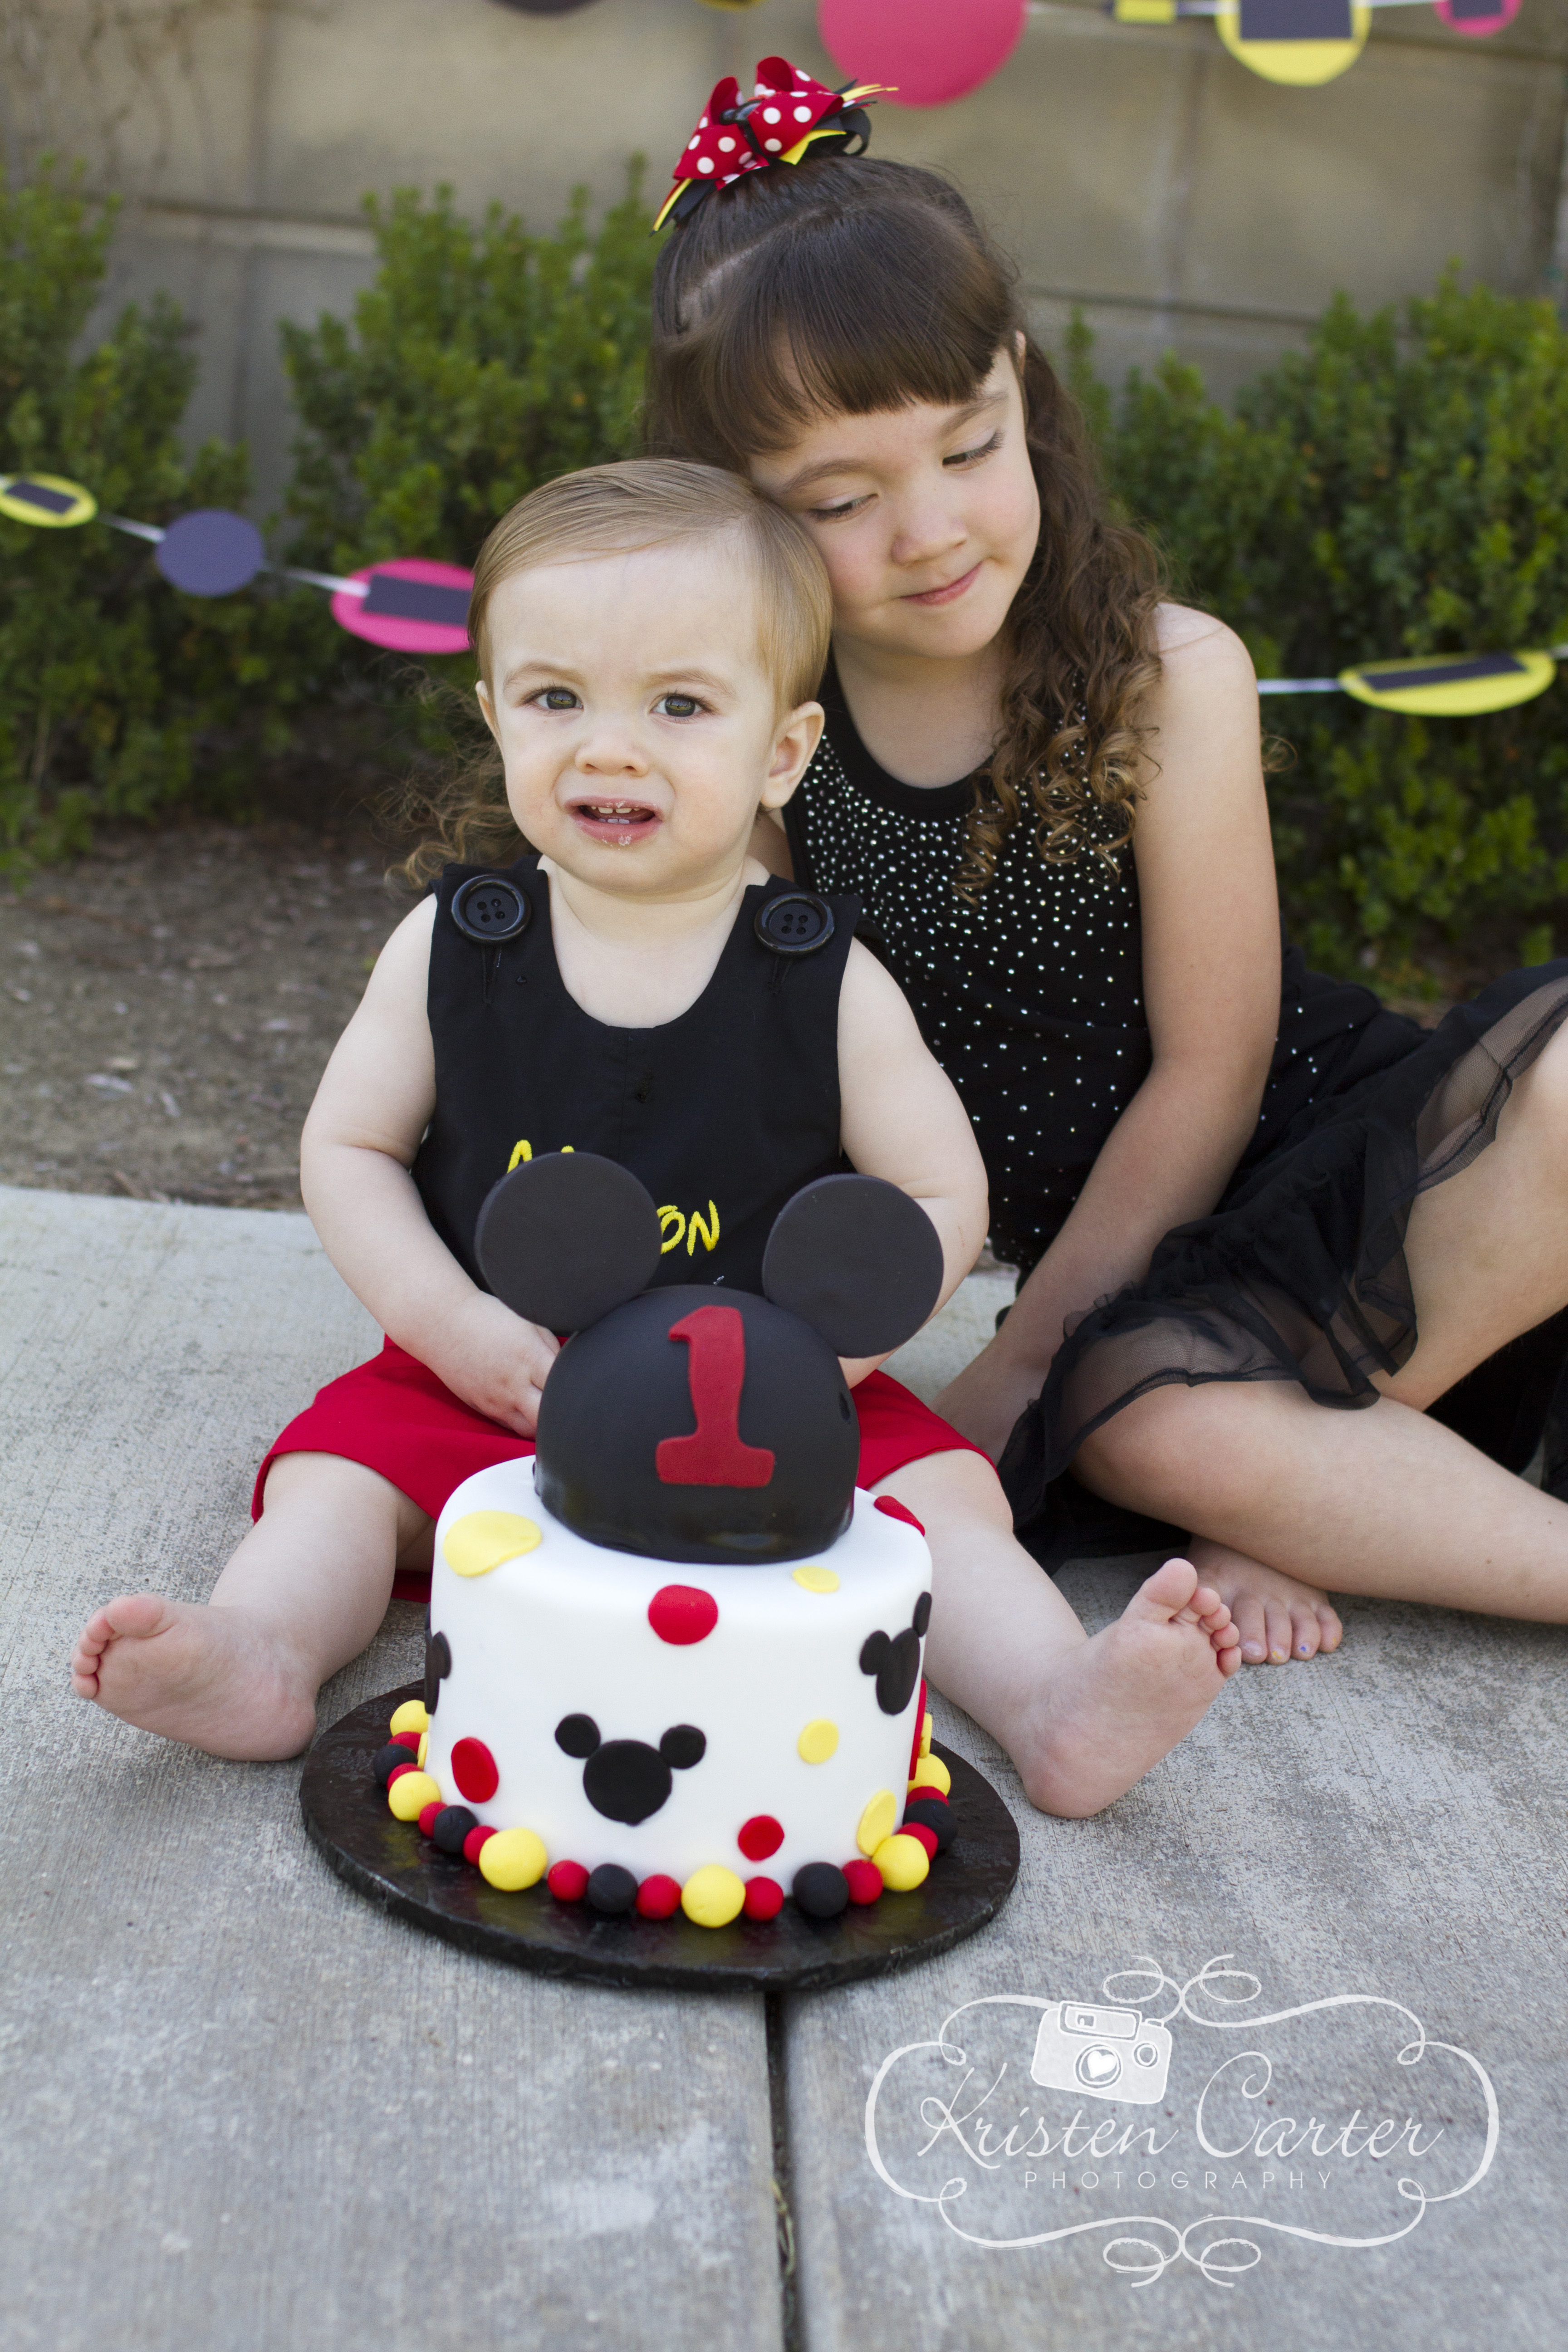 Mickey Mouse Cake Smash Kristen Carter Photography Scottsdale AZ First Birthday.jpg